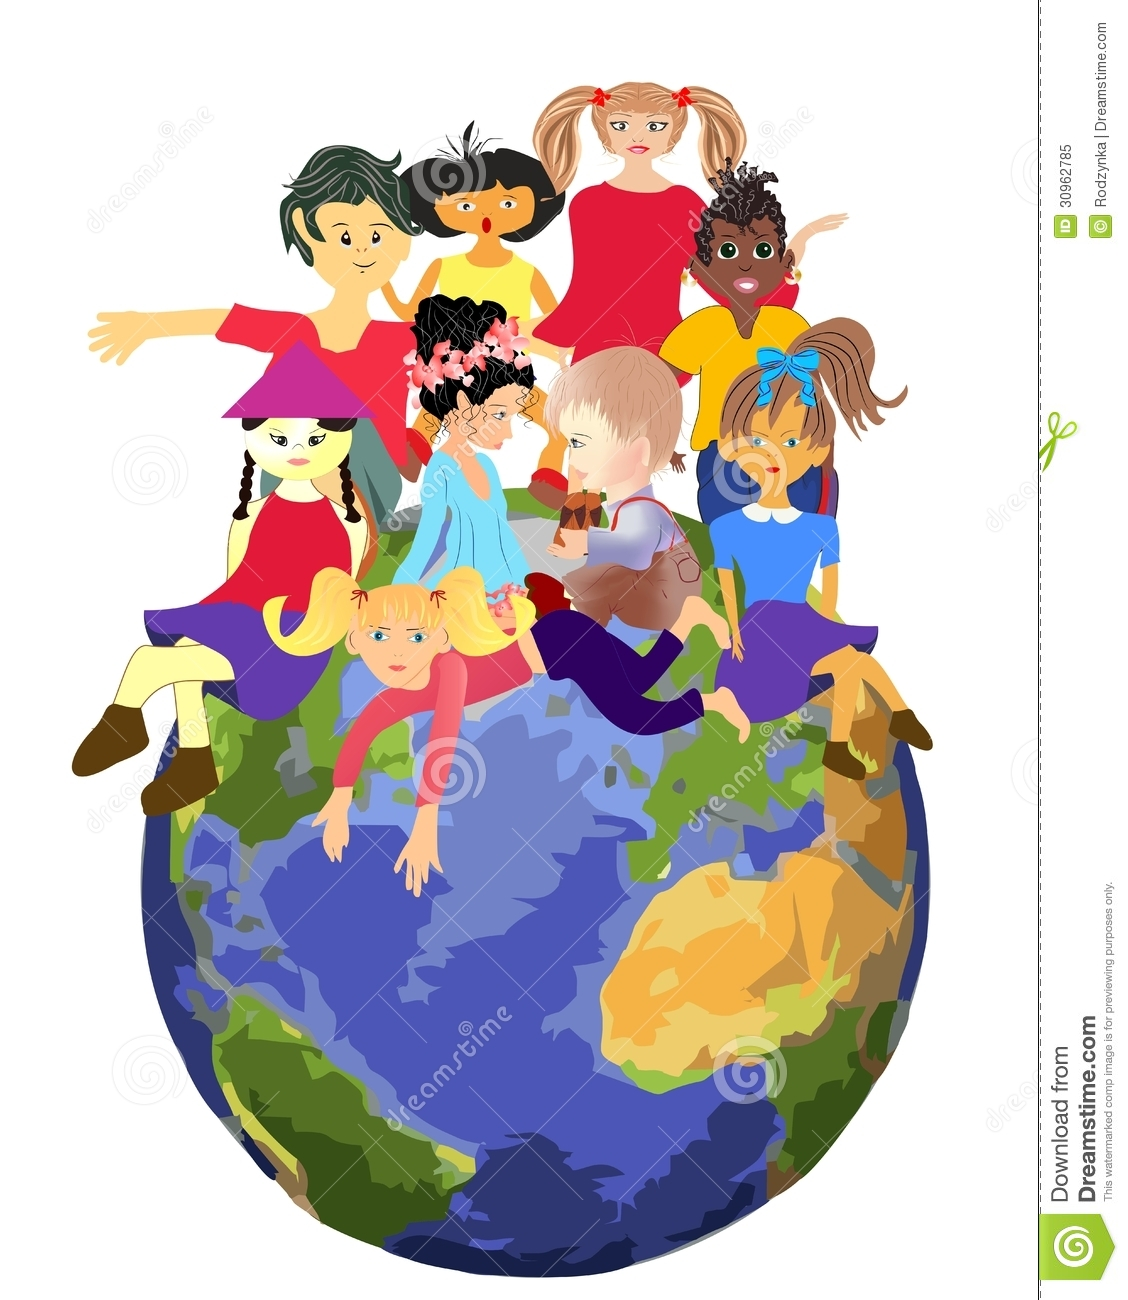 Children Planet Royalty Free Stock Photo - Image: 30962785 Happy Child Clipart